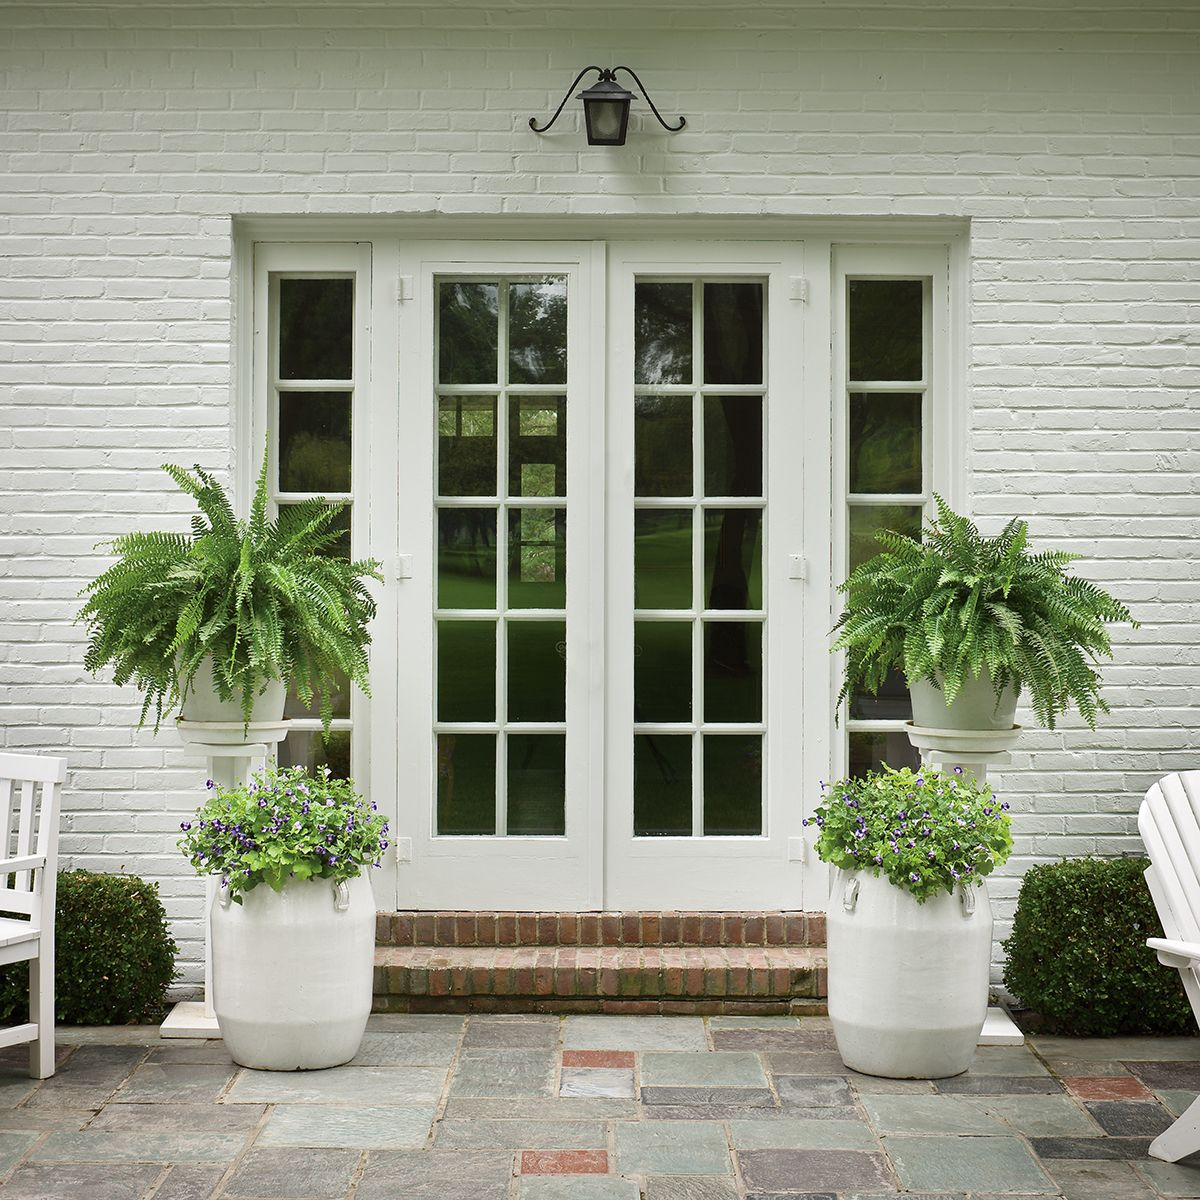 Container Plant Ideas Front Door: Entrances That Are In Full Shade Can Be A Challenge, But